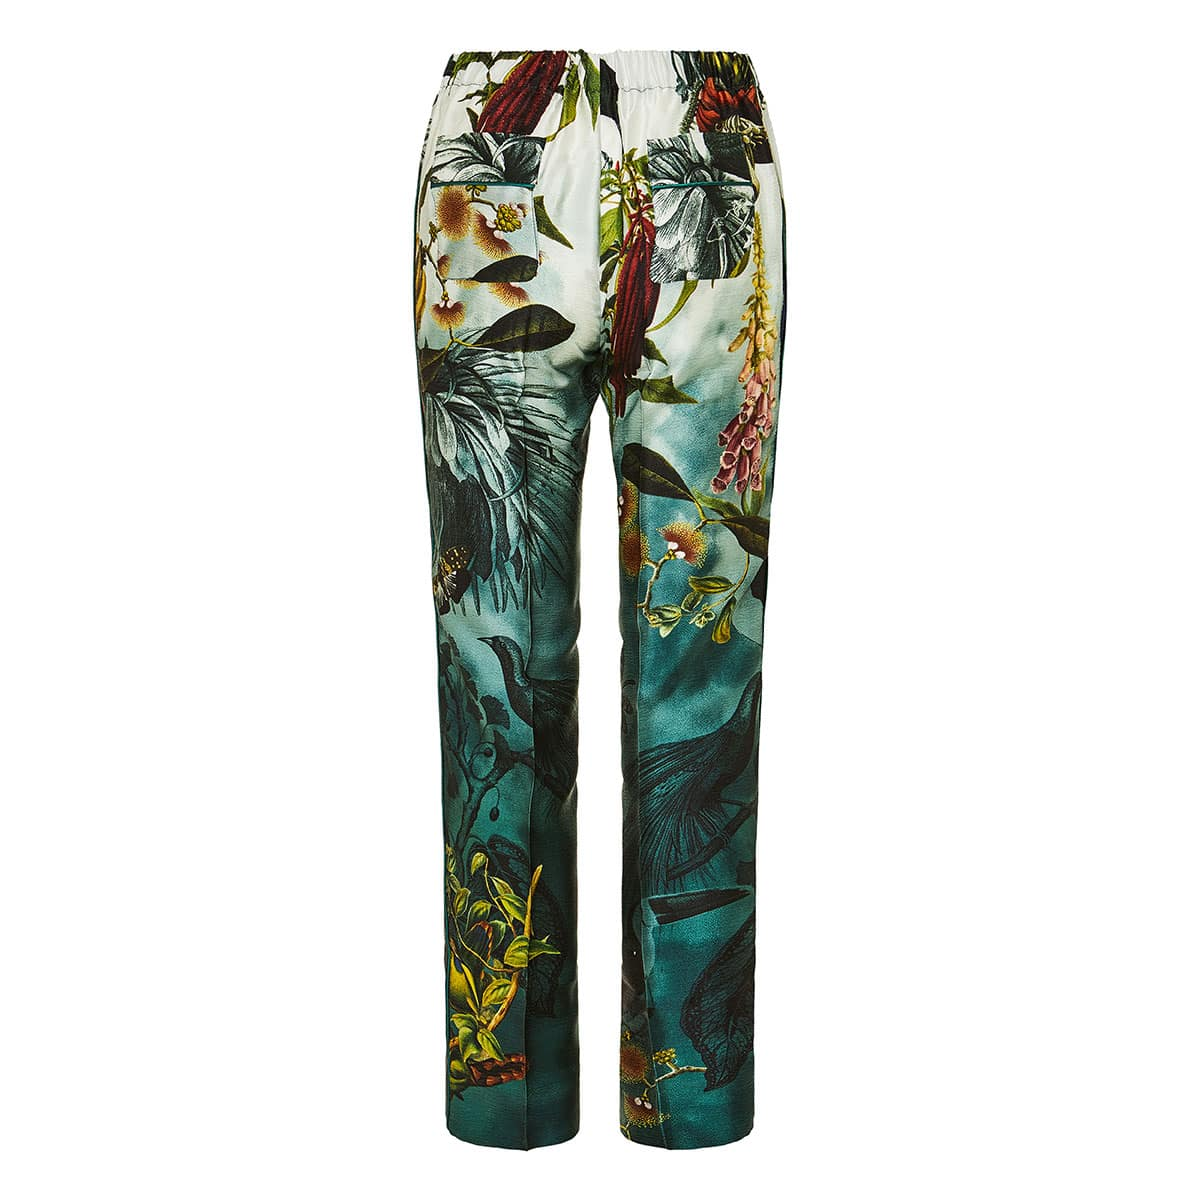 Etere printed straight-leg trousers